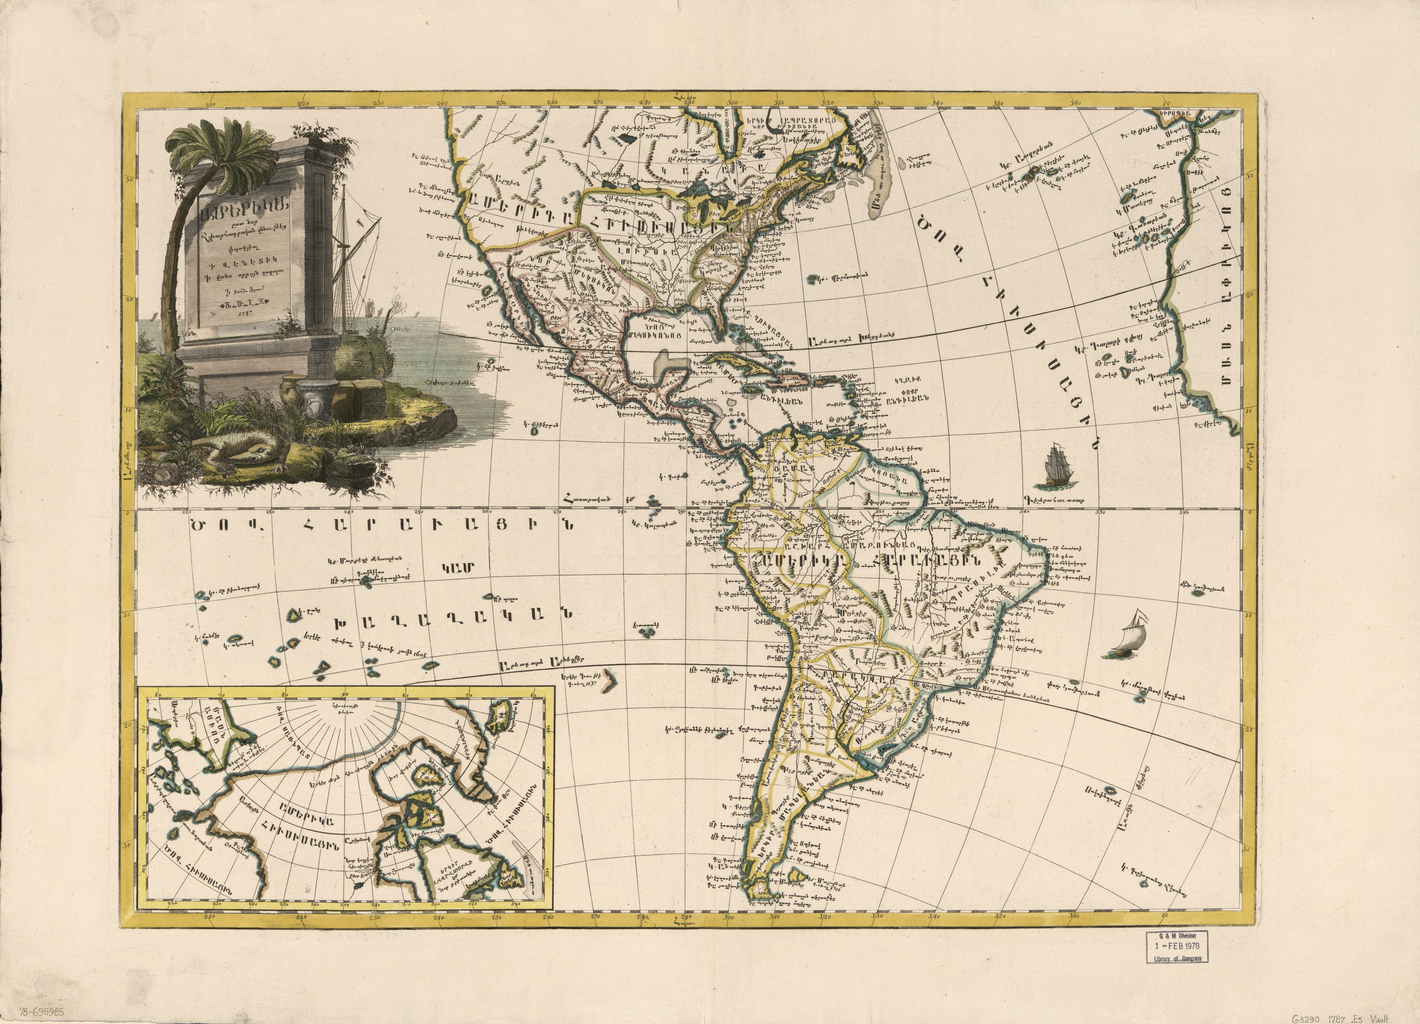 America According to New Geographical Explorations, a map printed by the Mekhitarist Congregation in Venice in 1787 (around twenty years before the Lewis and Clark Expedition)